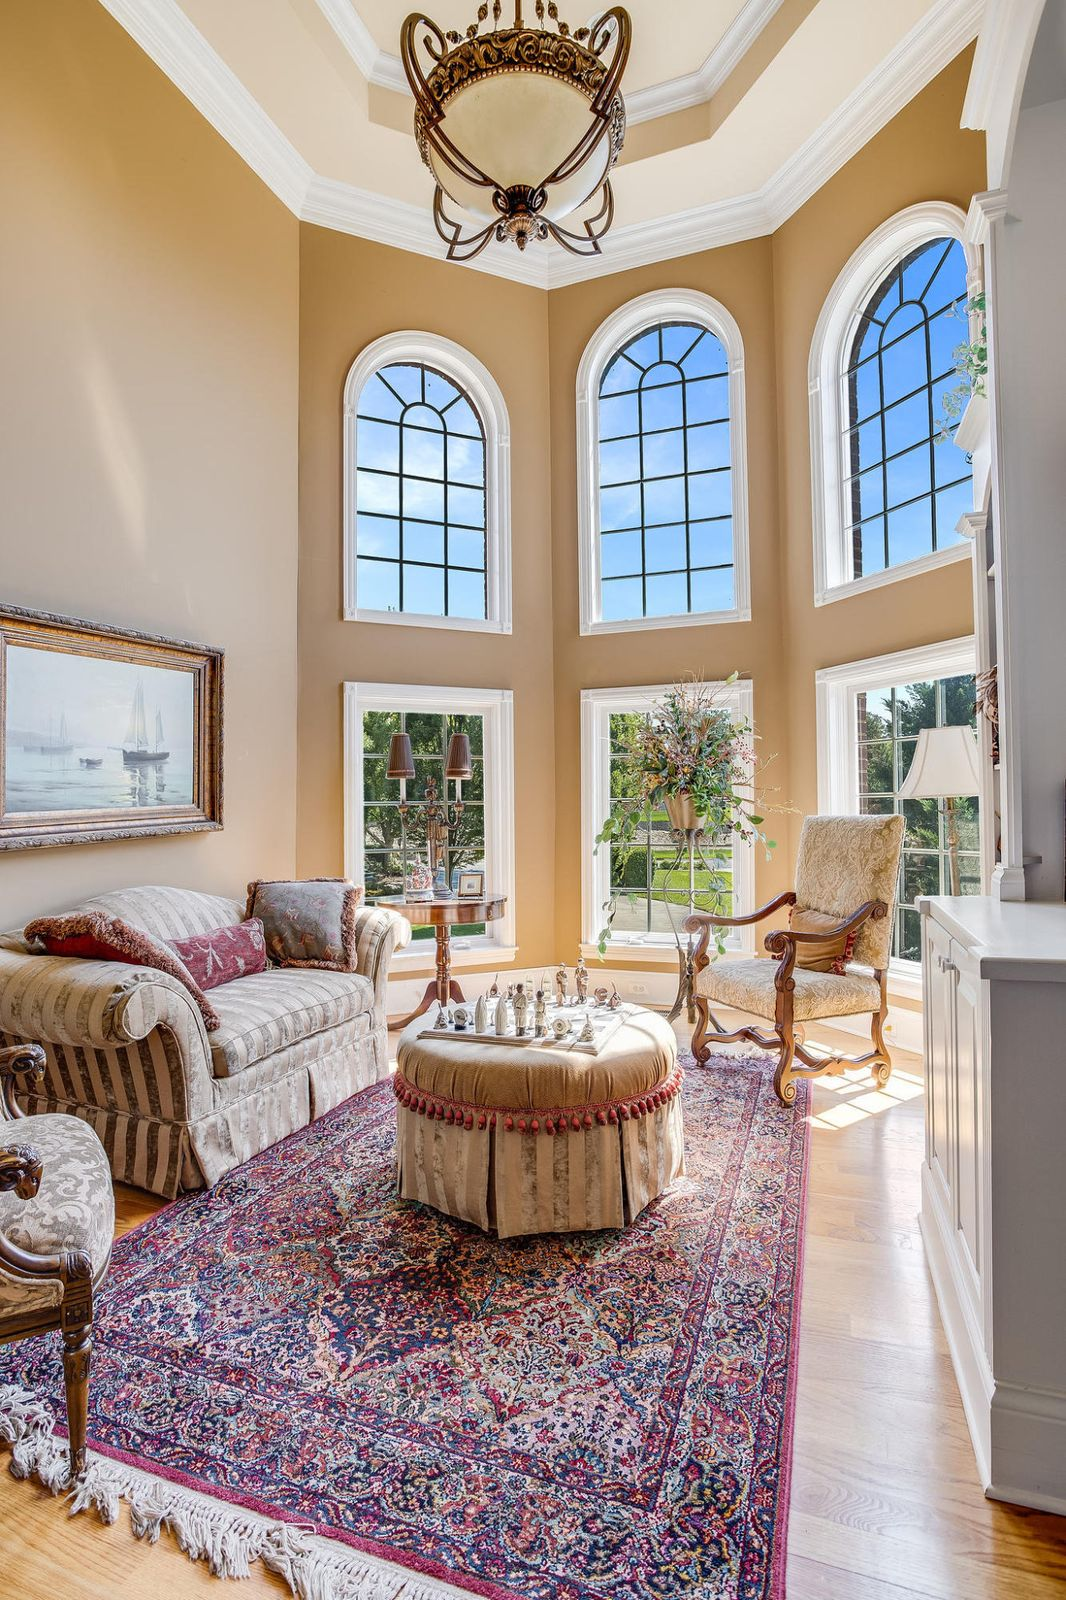 Walls of Windows in Great Room